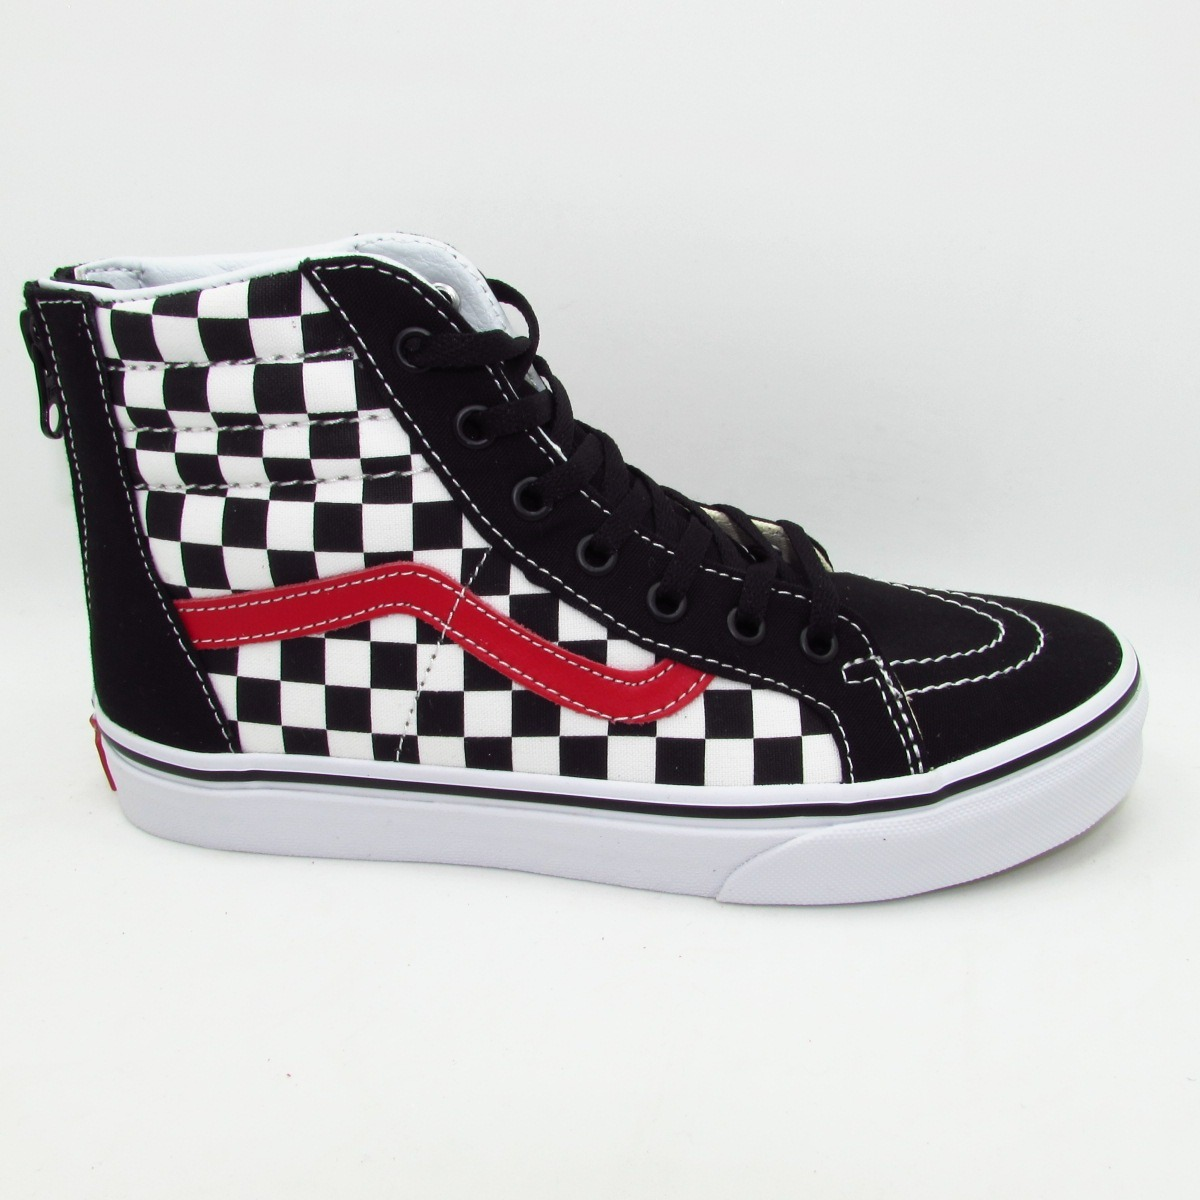 086e776371 tenis vans sk8 hi zip vn0a3276u3z checkerboard black red. Cargando zoom.